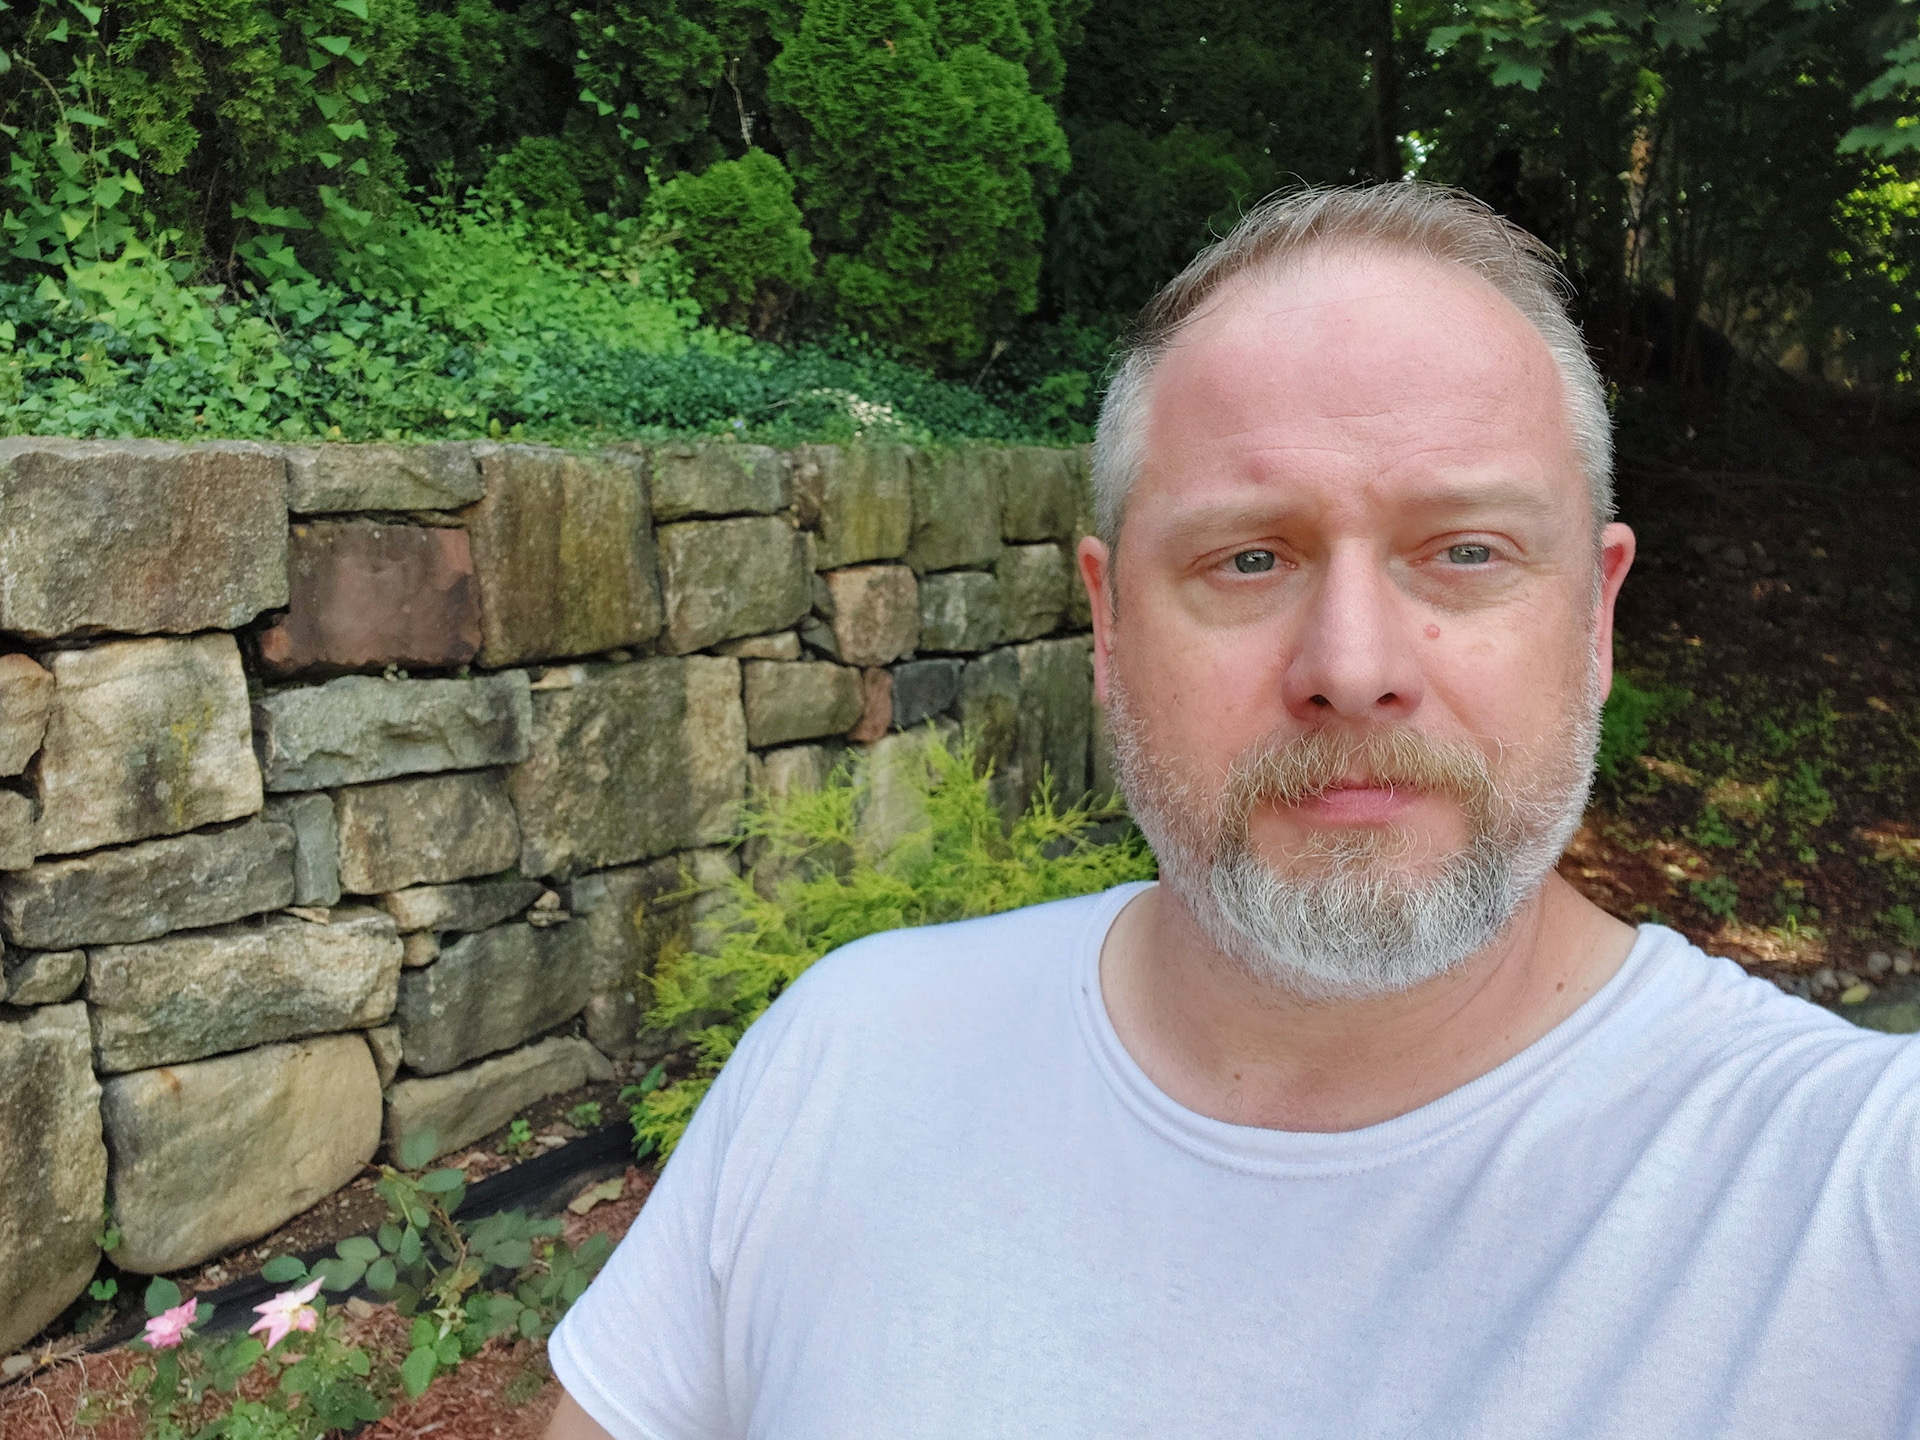 Samsung Galaxy A42 photo sample selfie taken outdoors of a man with a beard in a white t-shirt with a wall and greenery behind him